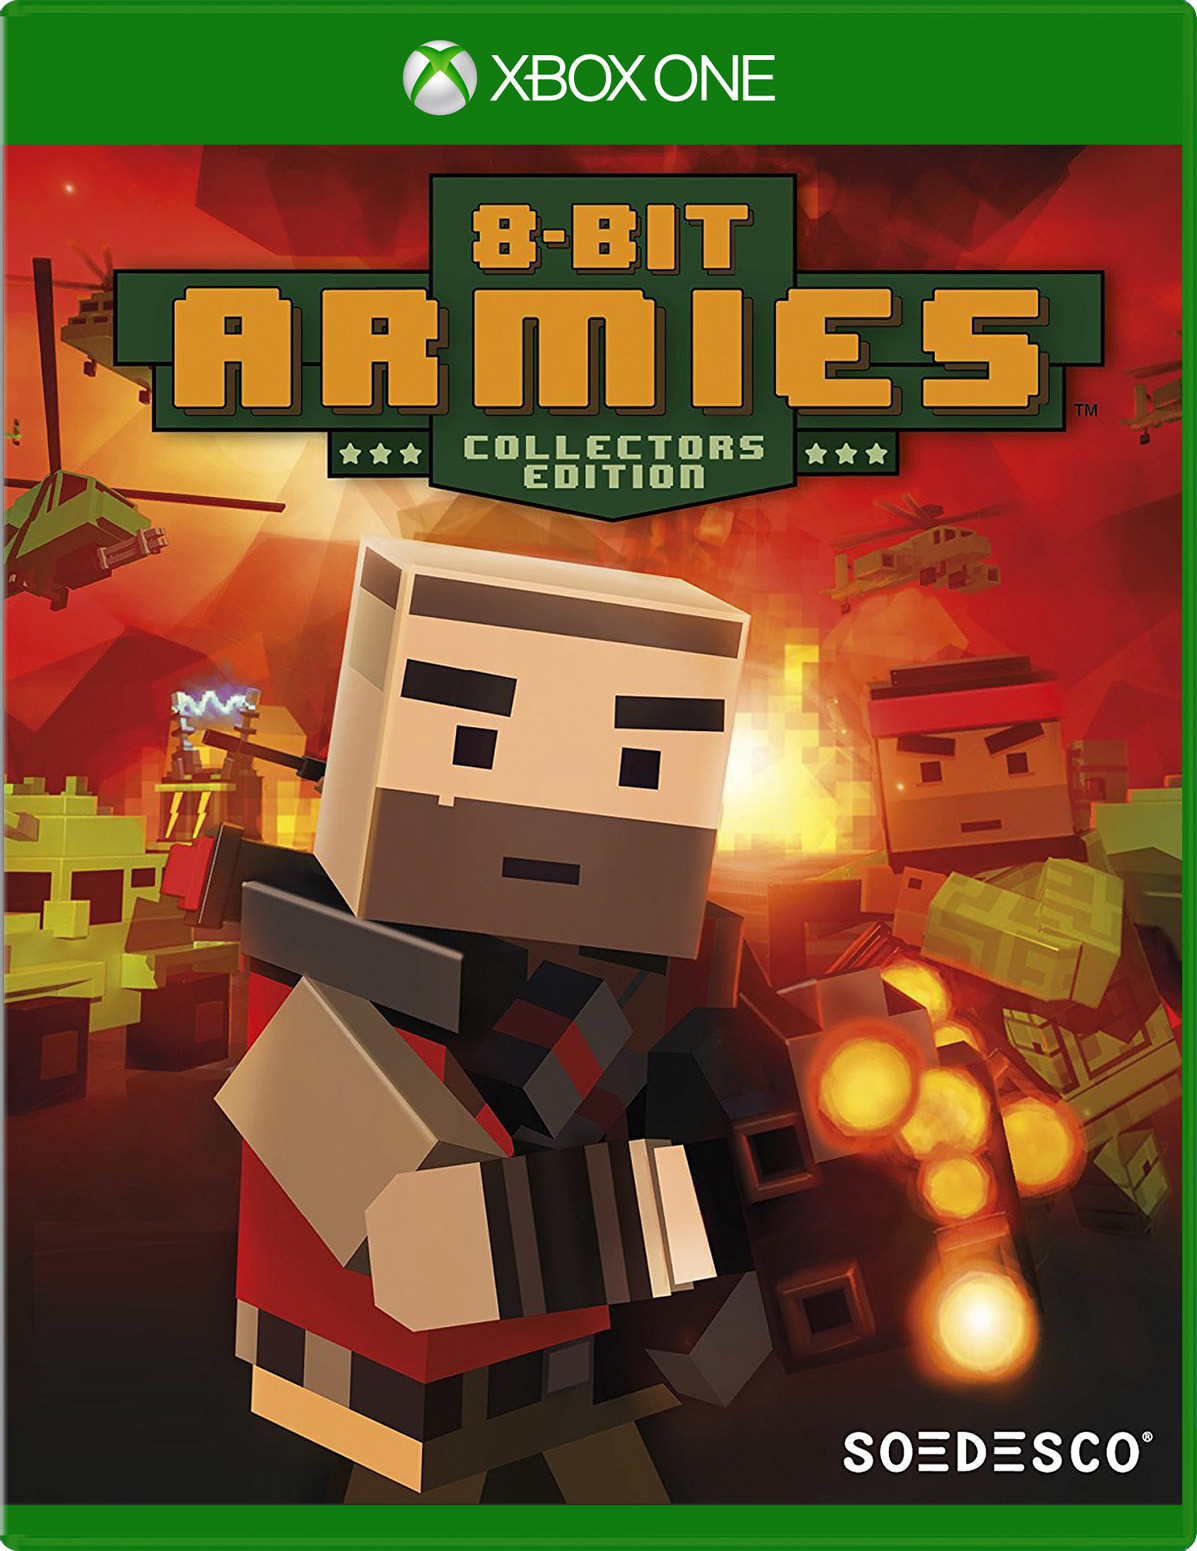 8-Bit Armies Collector's Edition for Xbox One